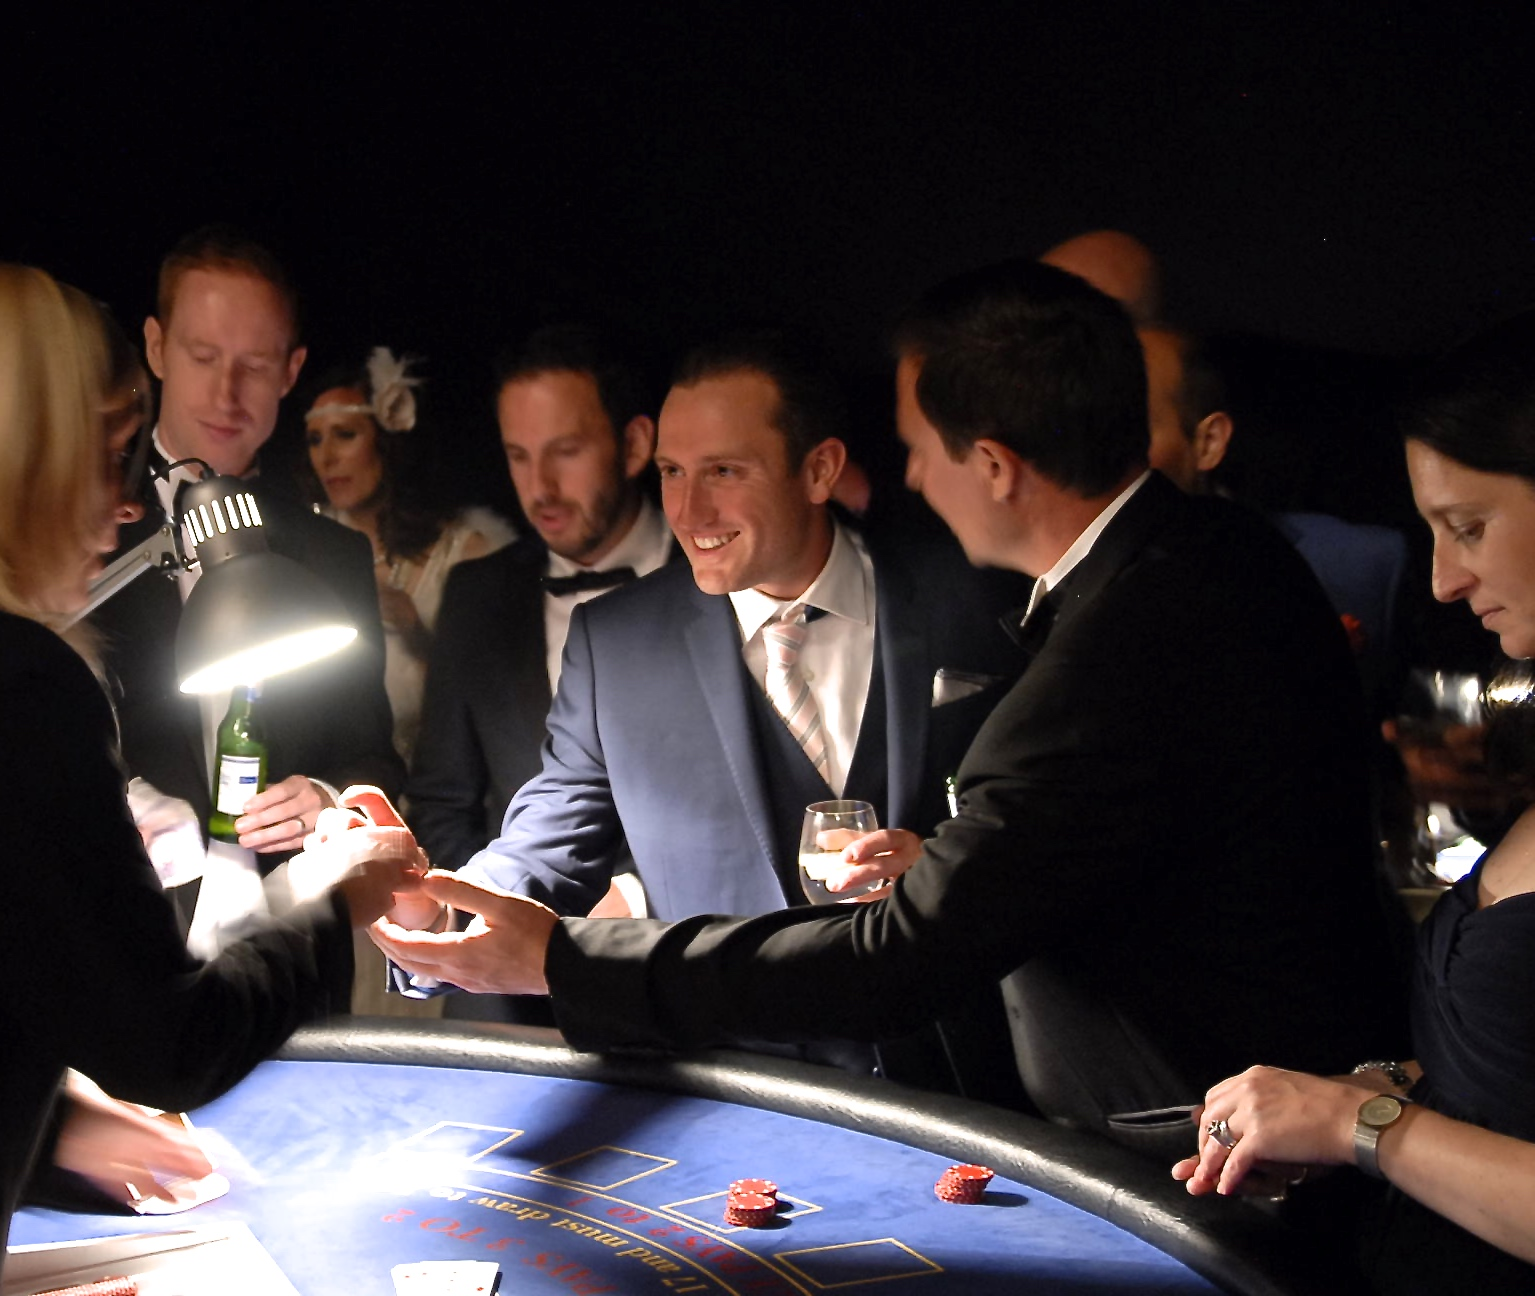 photo website hands out to croupier